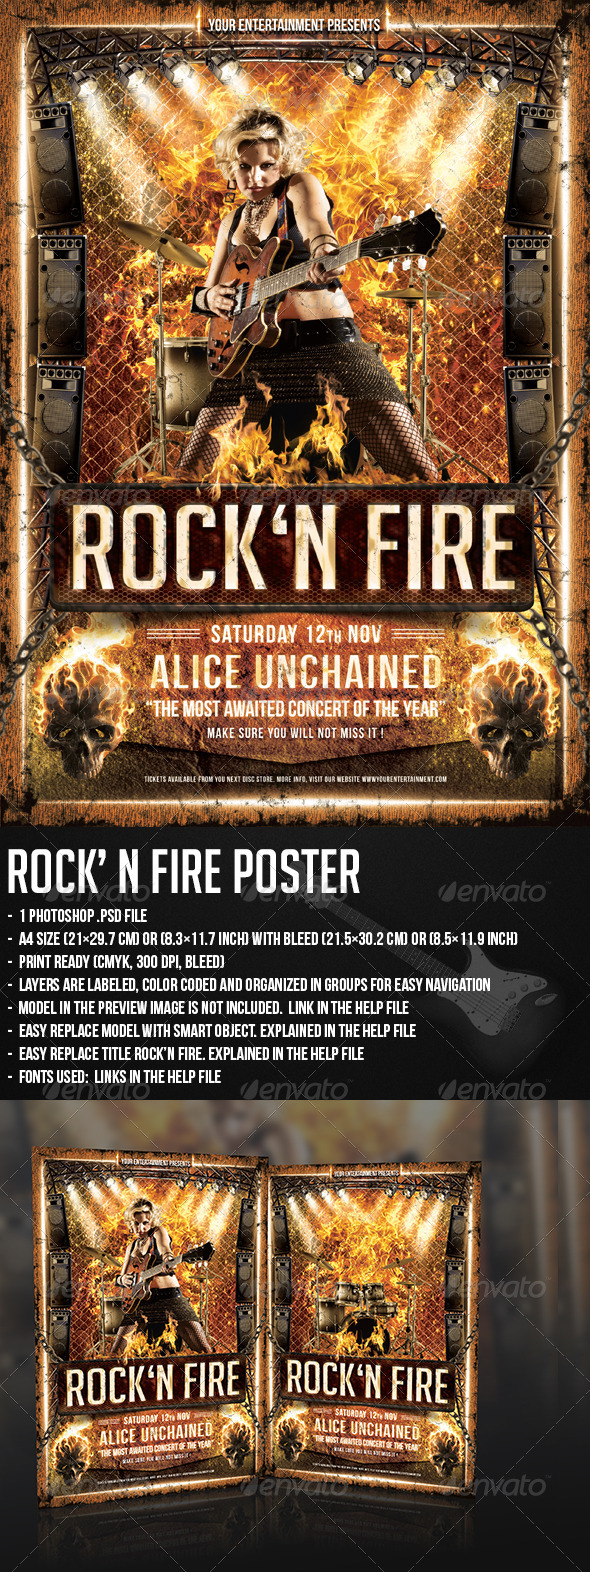 GraphicRiver Rock N Fire Live Poster 5445993